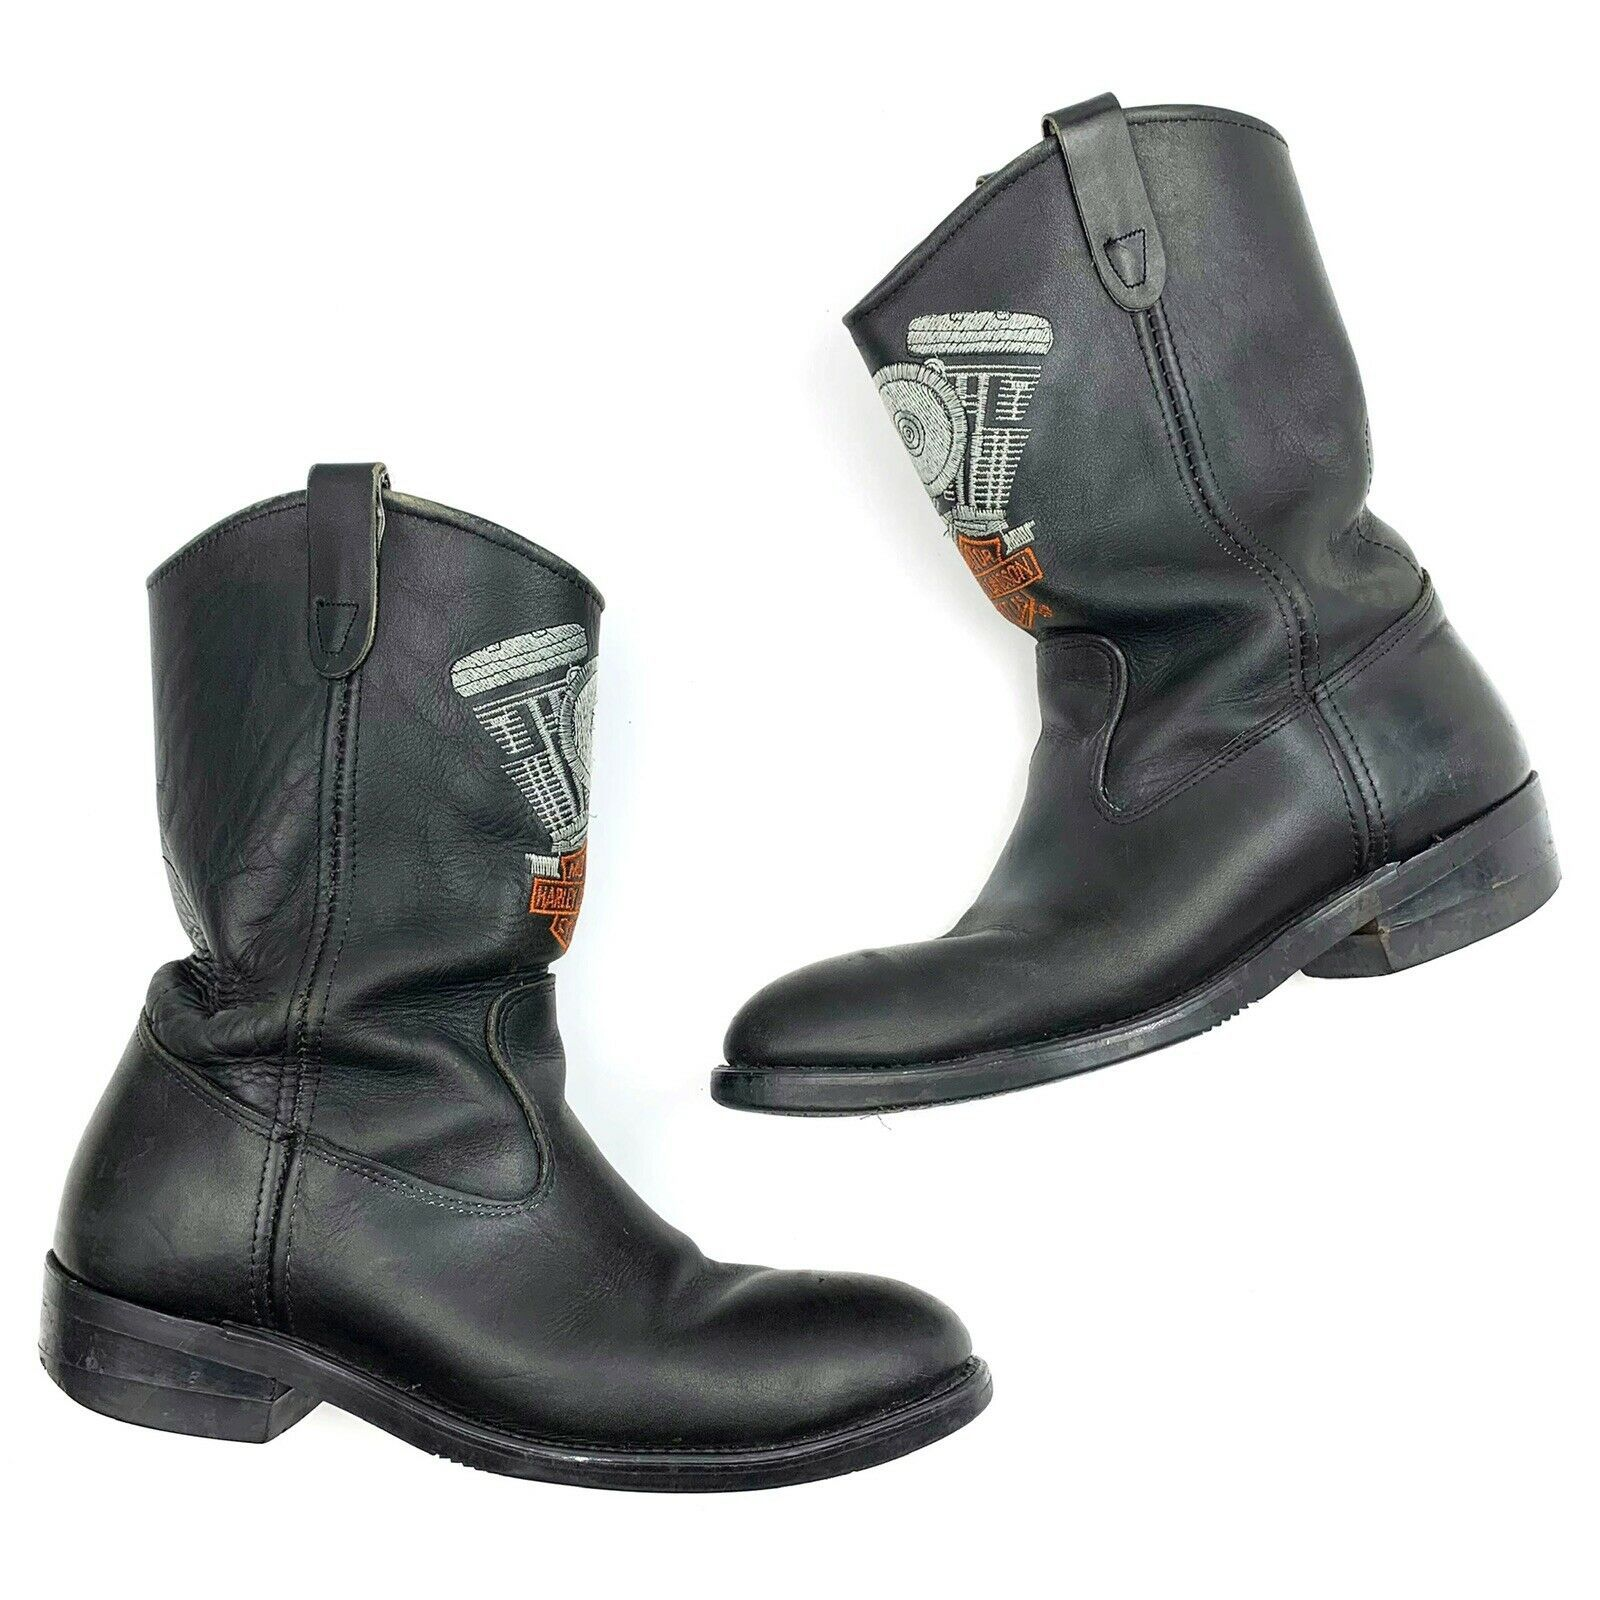 Primary image for Harley Davidson Black Embroidered Western Boots Size 11 Steel Toe